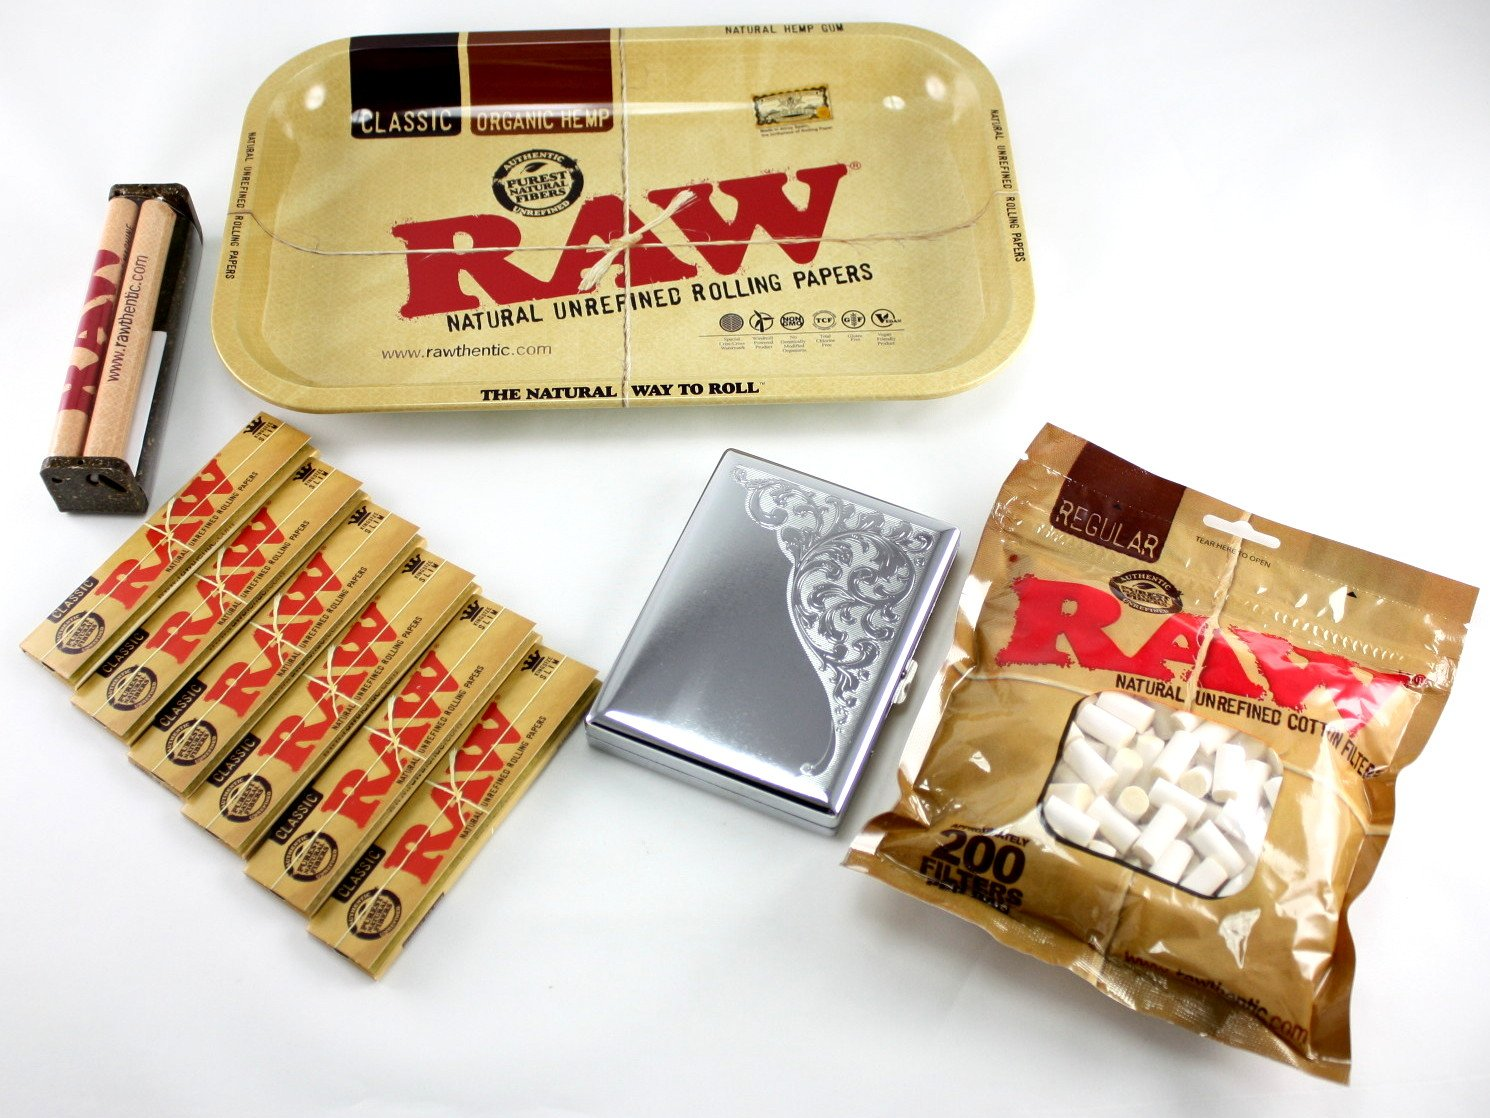 RAW Rolling Tray + 110mm RAW Roller + RAW King Size Rolling Papers + RAW Filter Tips + Skyway Rocco 100's Cigarette Case Bundle / Kit